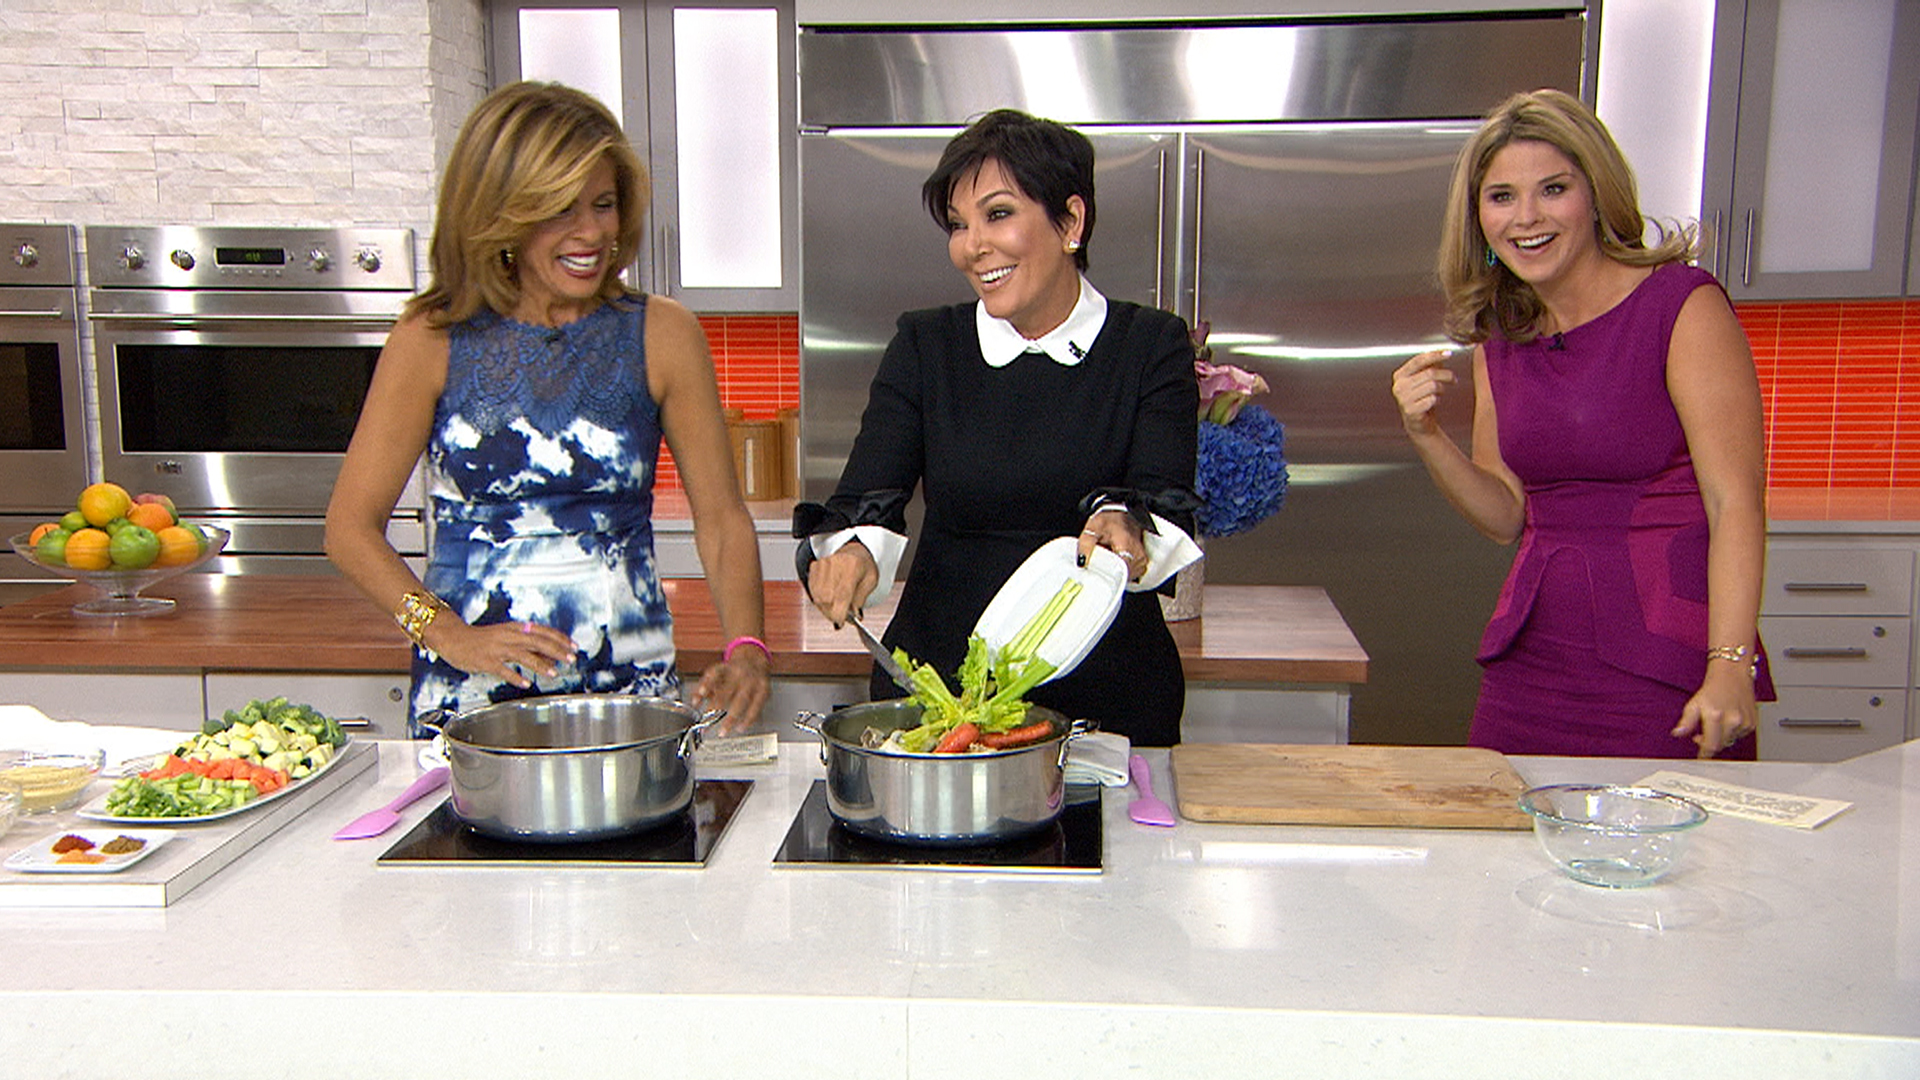 kris jenner cooks up family favorite chicken soup - today